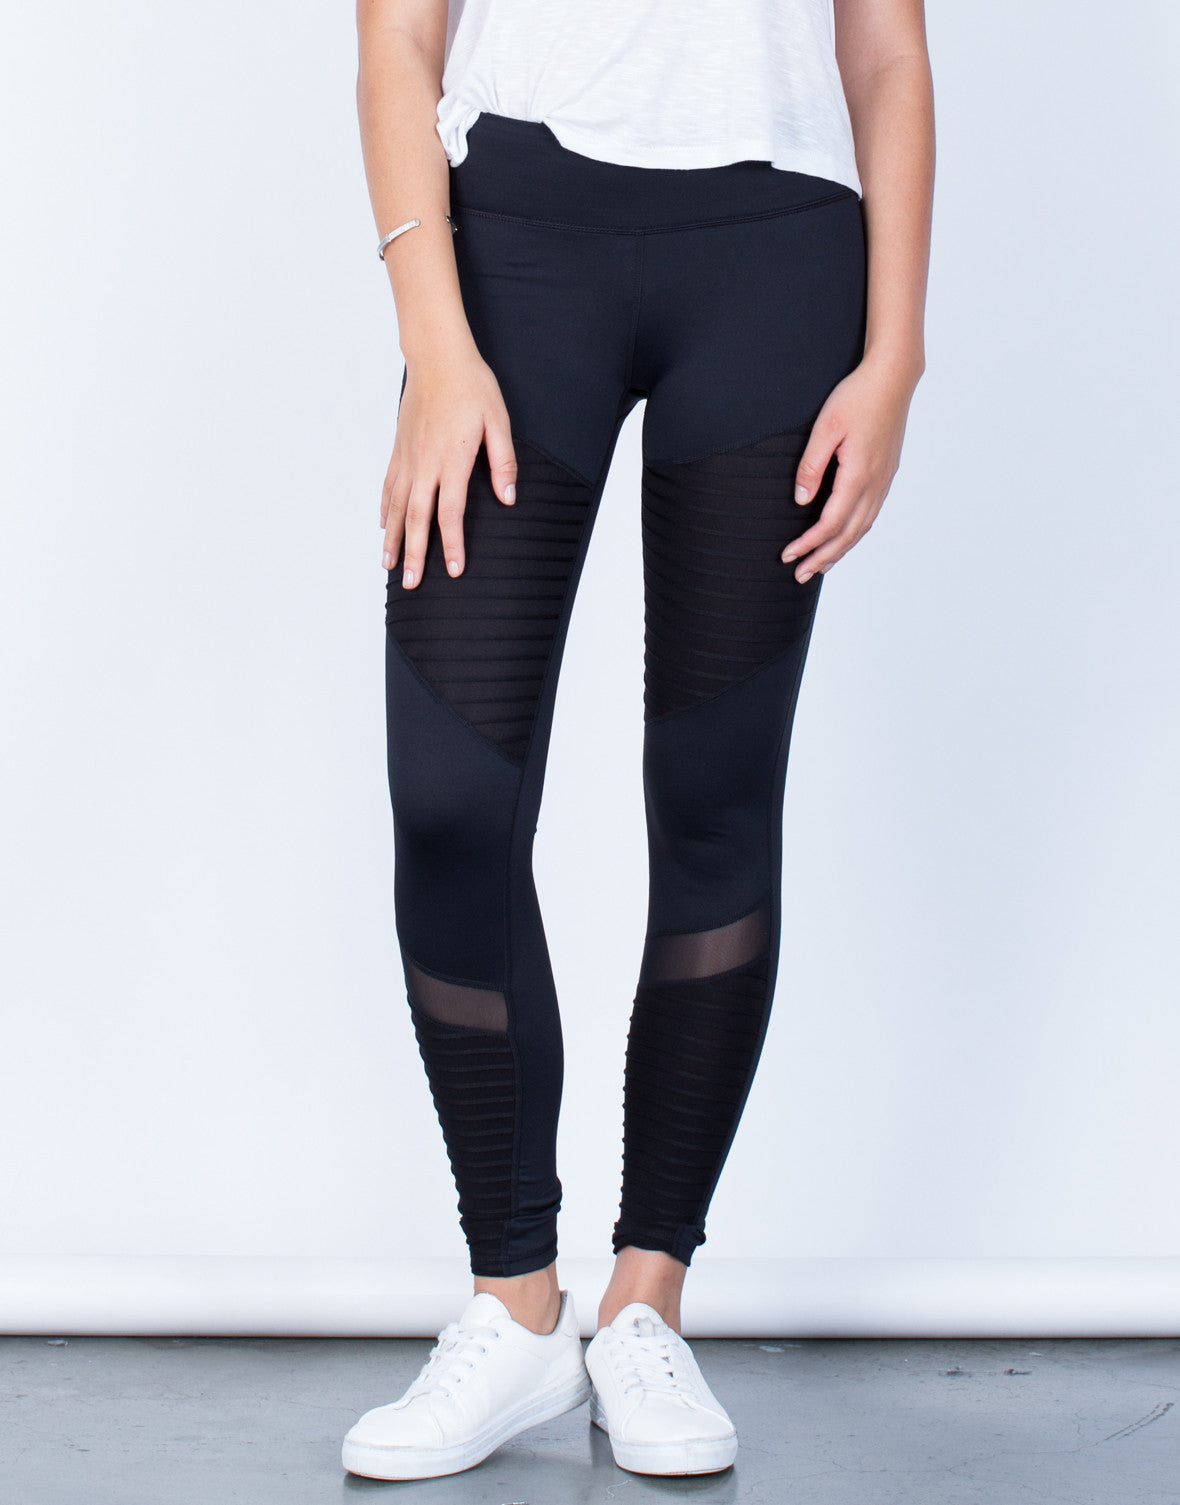 Front View of Mesh Lined Leggings